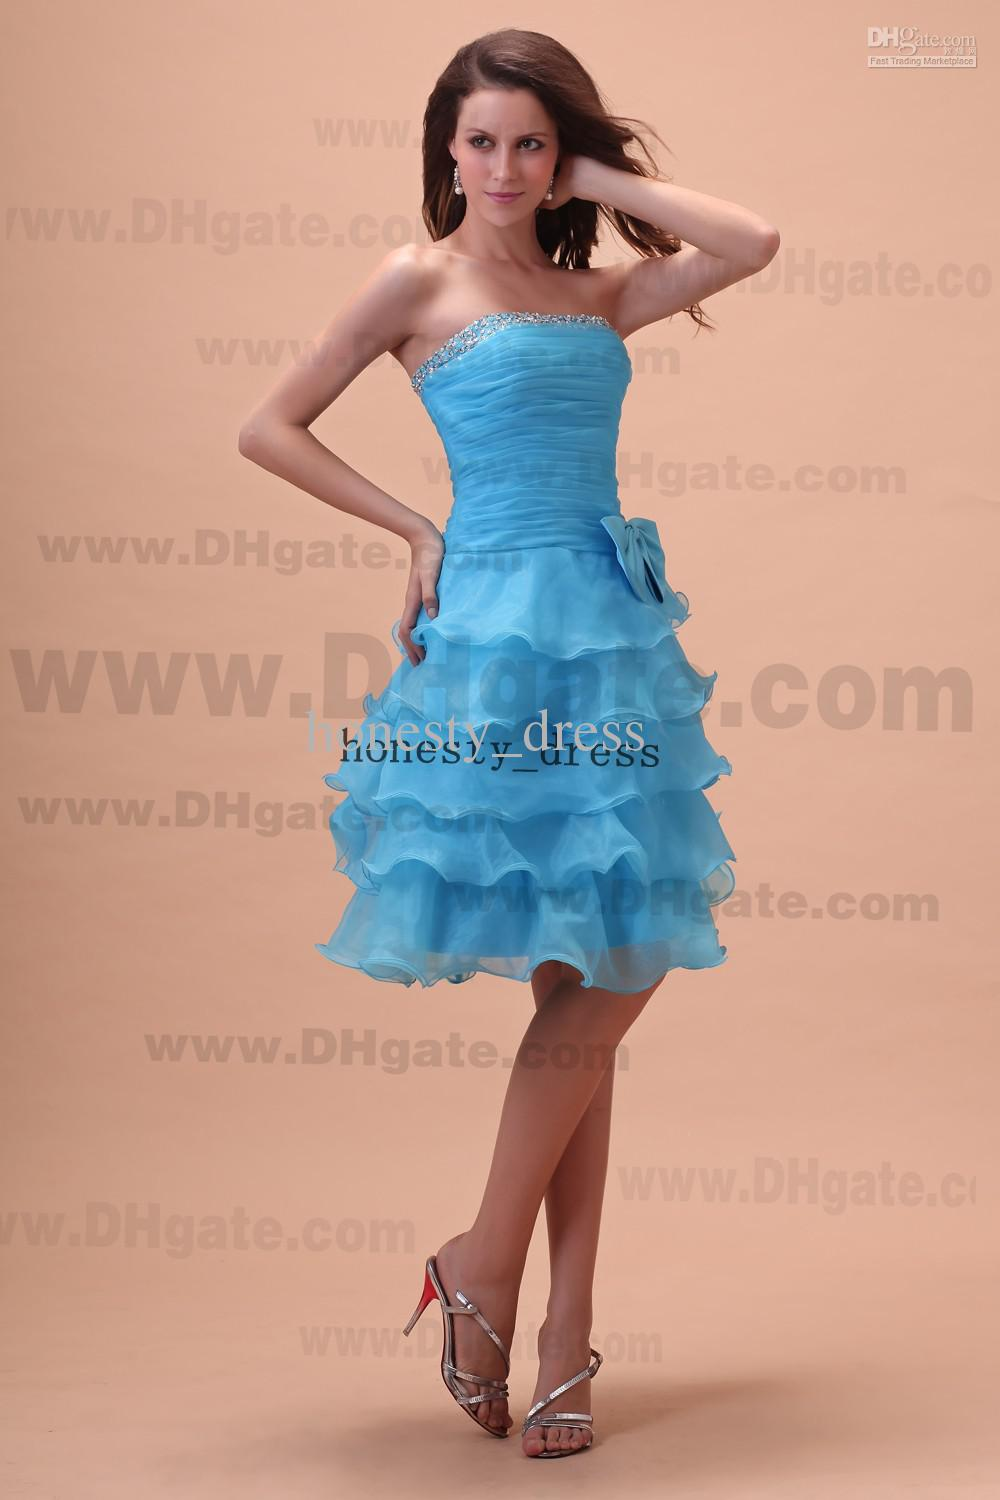 Sassy light blue a line organza junior bridesmaid dress strapless sassy light blue a line organza junior bridesmaid dress strapless knee length beaded sequin tiered the honor of bridemaids gowns cheap occasion dresses ombrellifo Image collections